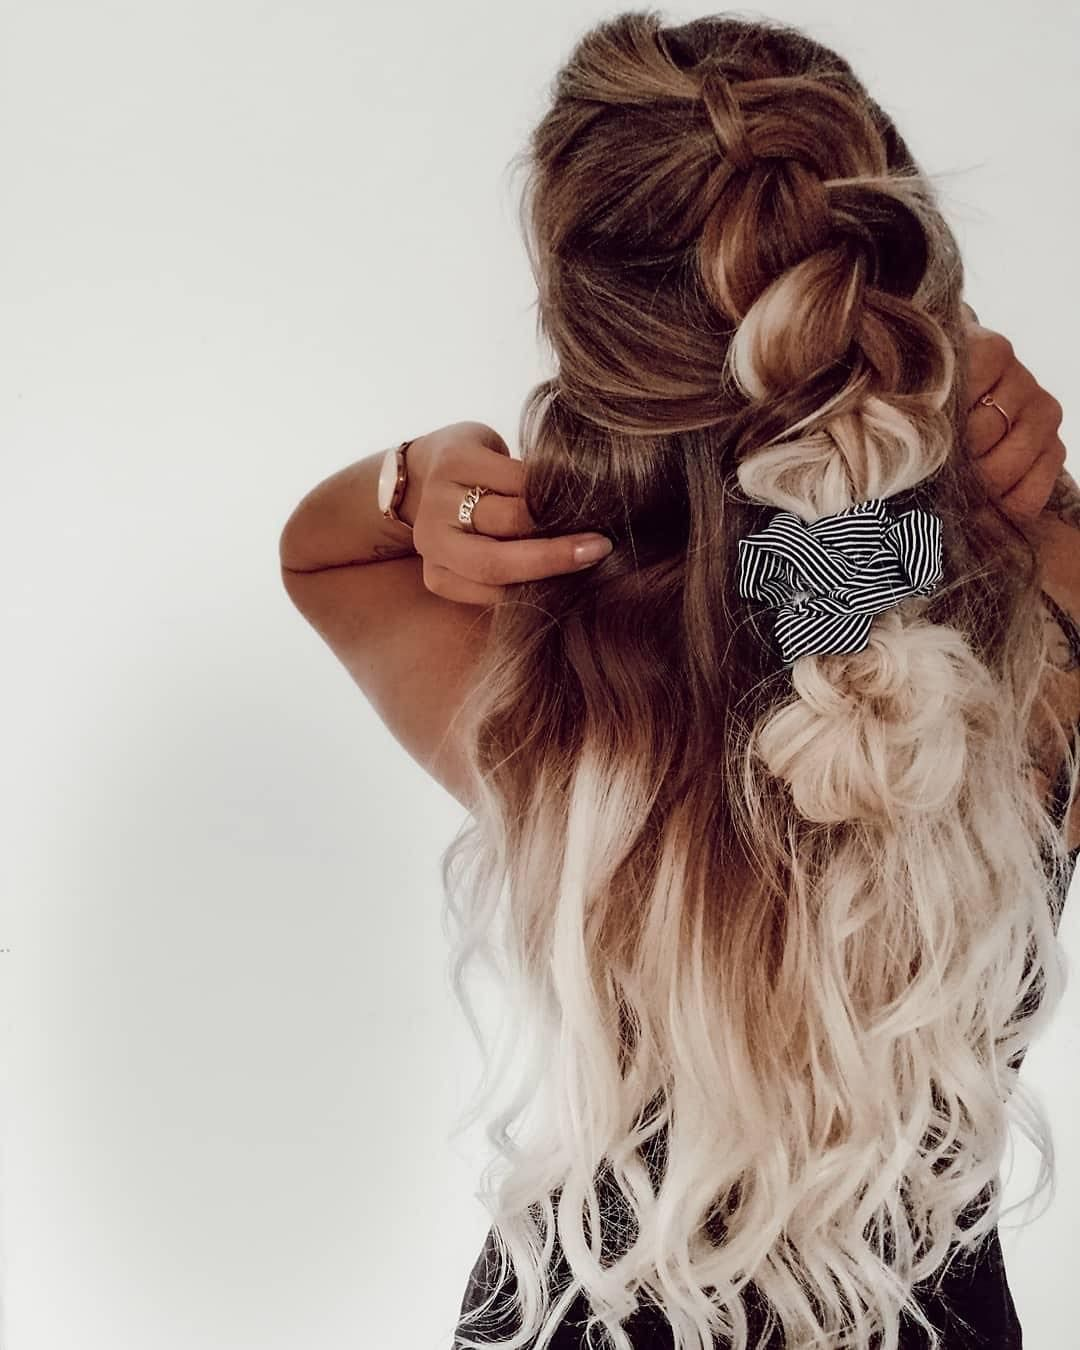 Clip-on hair extensions – Long hair in 5 minutes, a complete set to get the hair of your dreams ✨ You can play with dimensions and volume. @ohheylisa__ in one of our ombre colored clip-on set #rapunzelofsweden #hairextensions #braid #hairstyle #goals #hairinspo